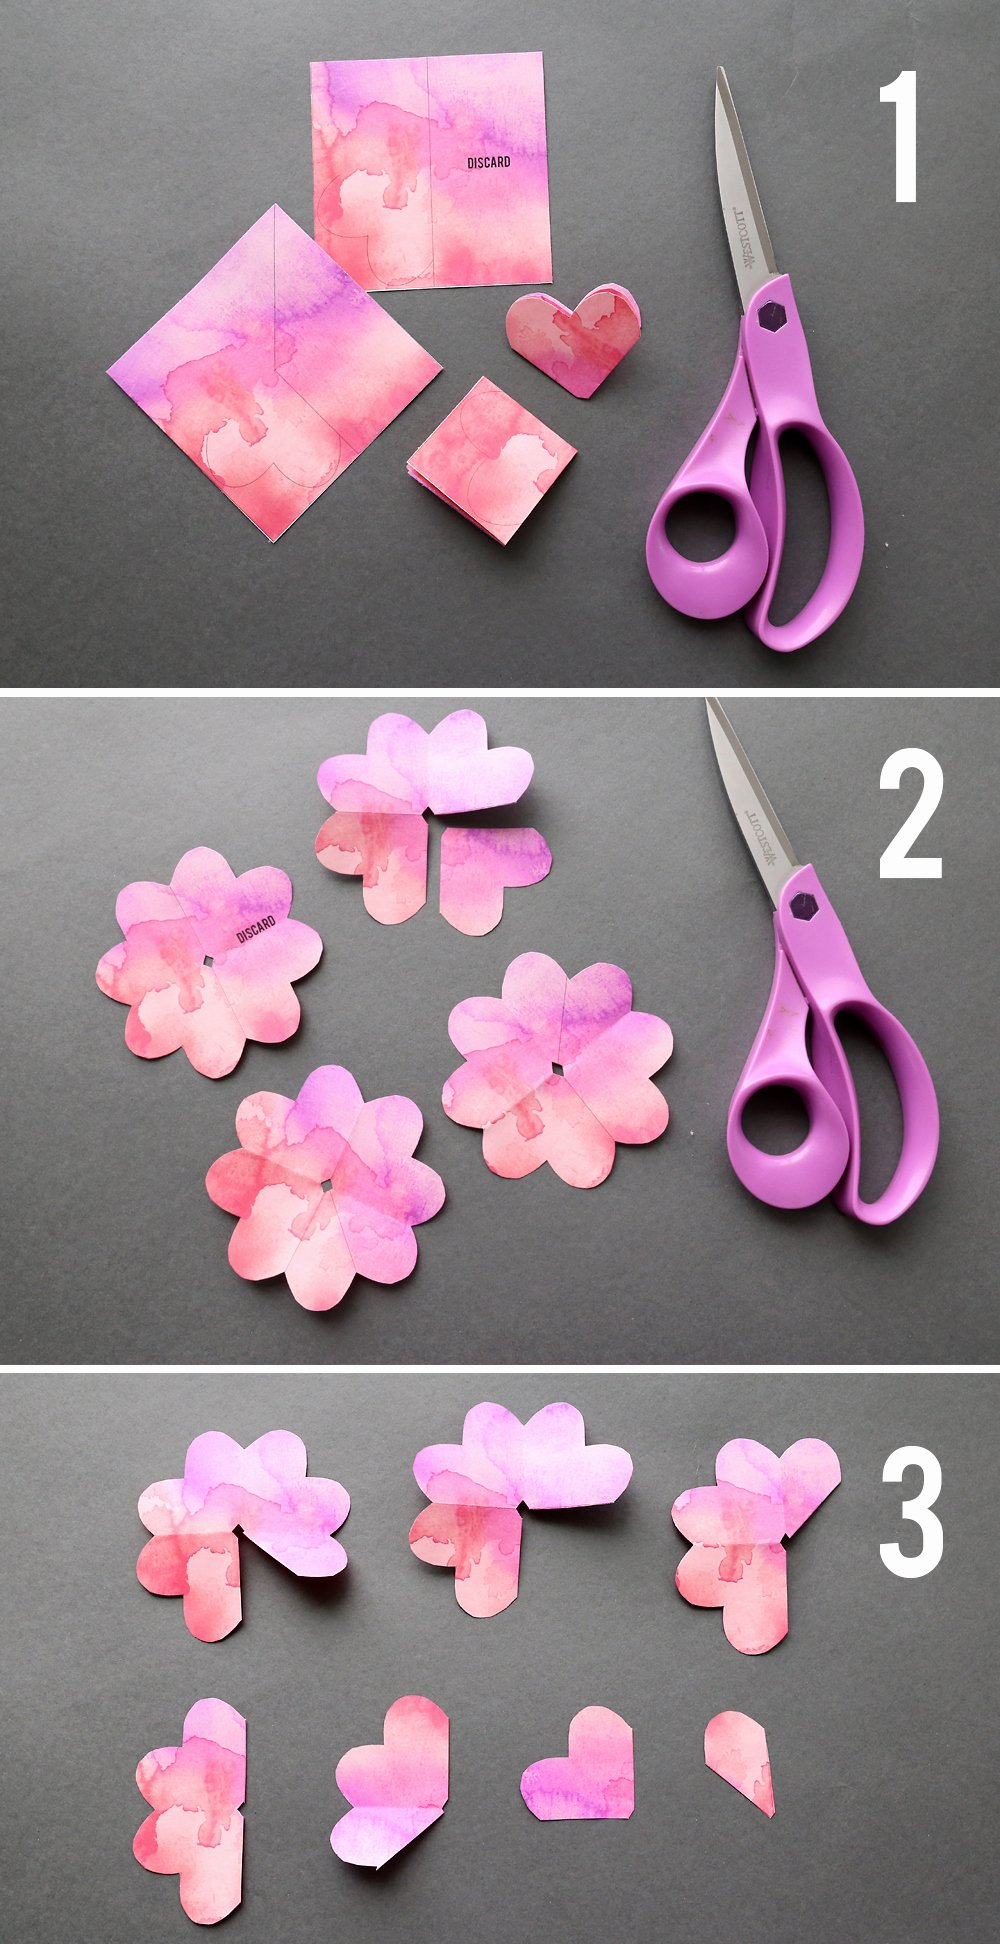 Small Paper Flower Templates Elegant Make Gorgeous Paper Roses with This Free Paper Rose